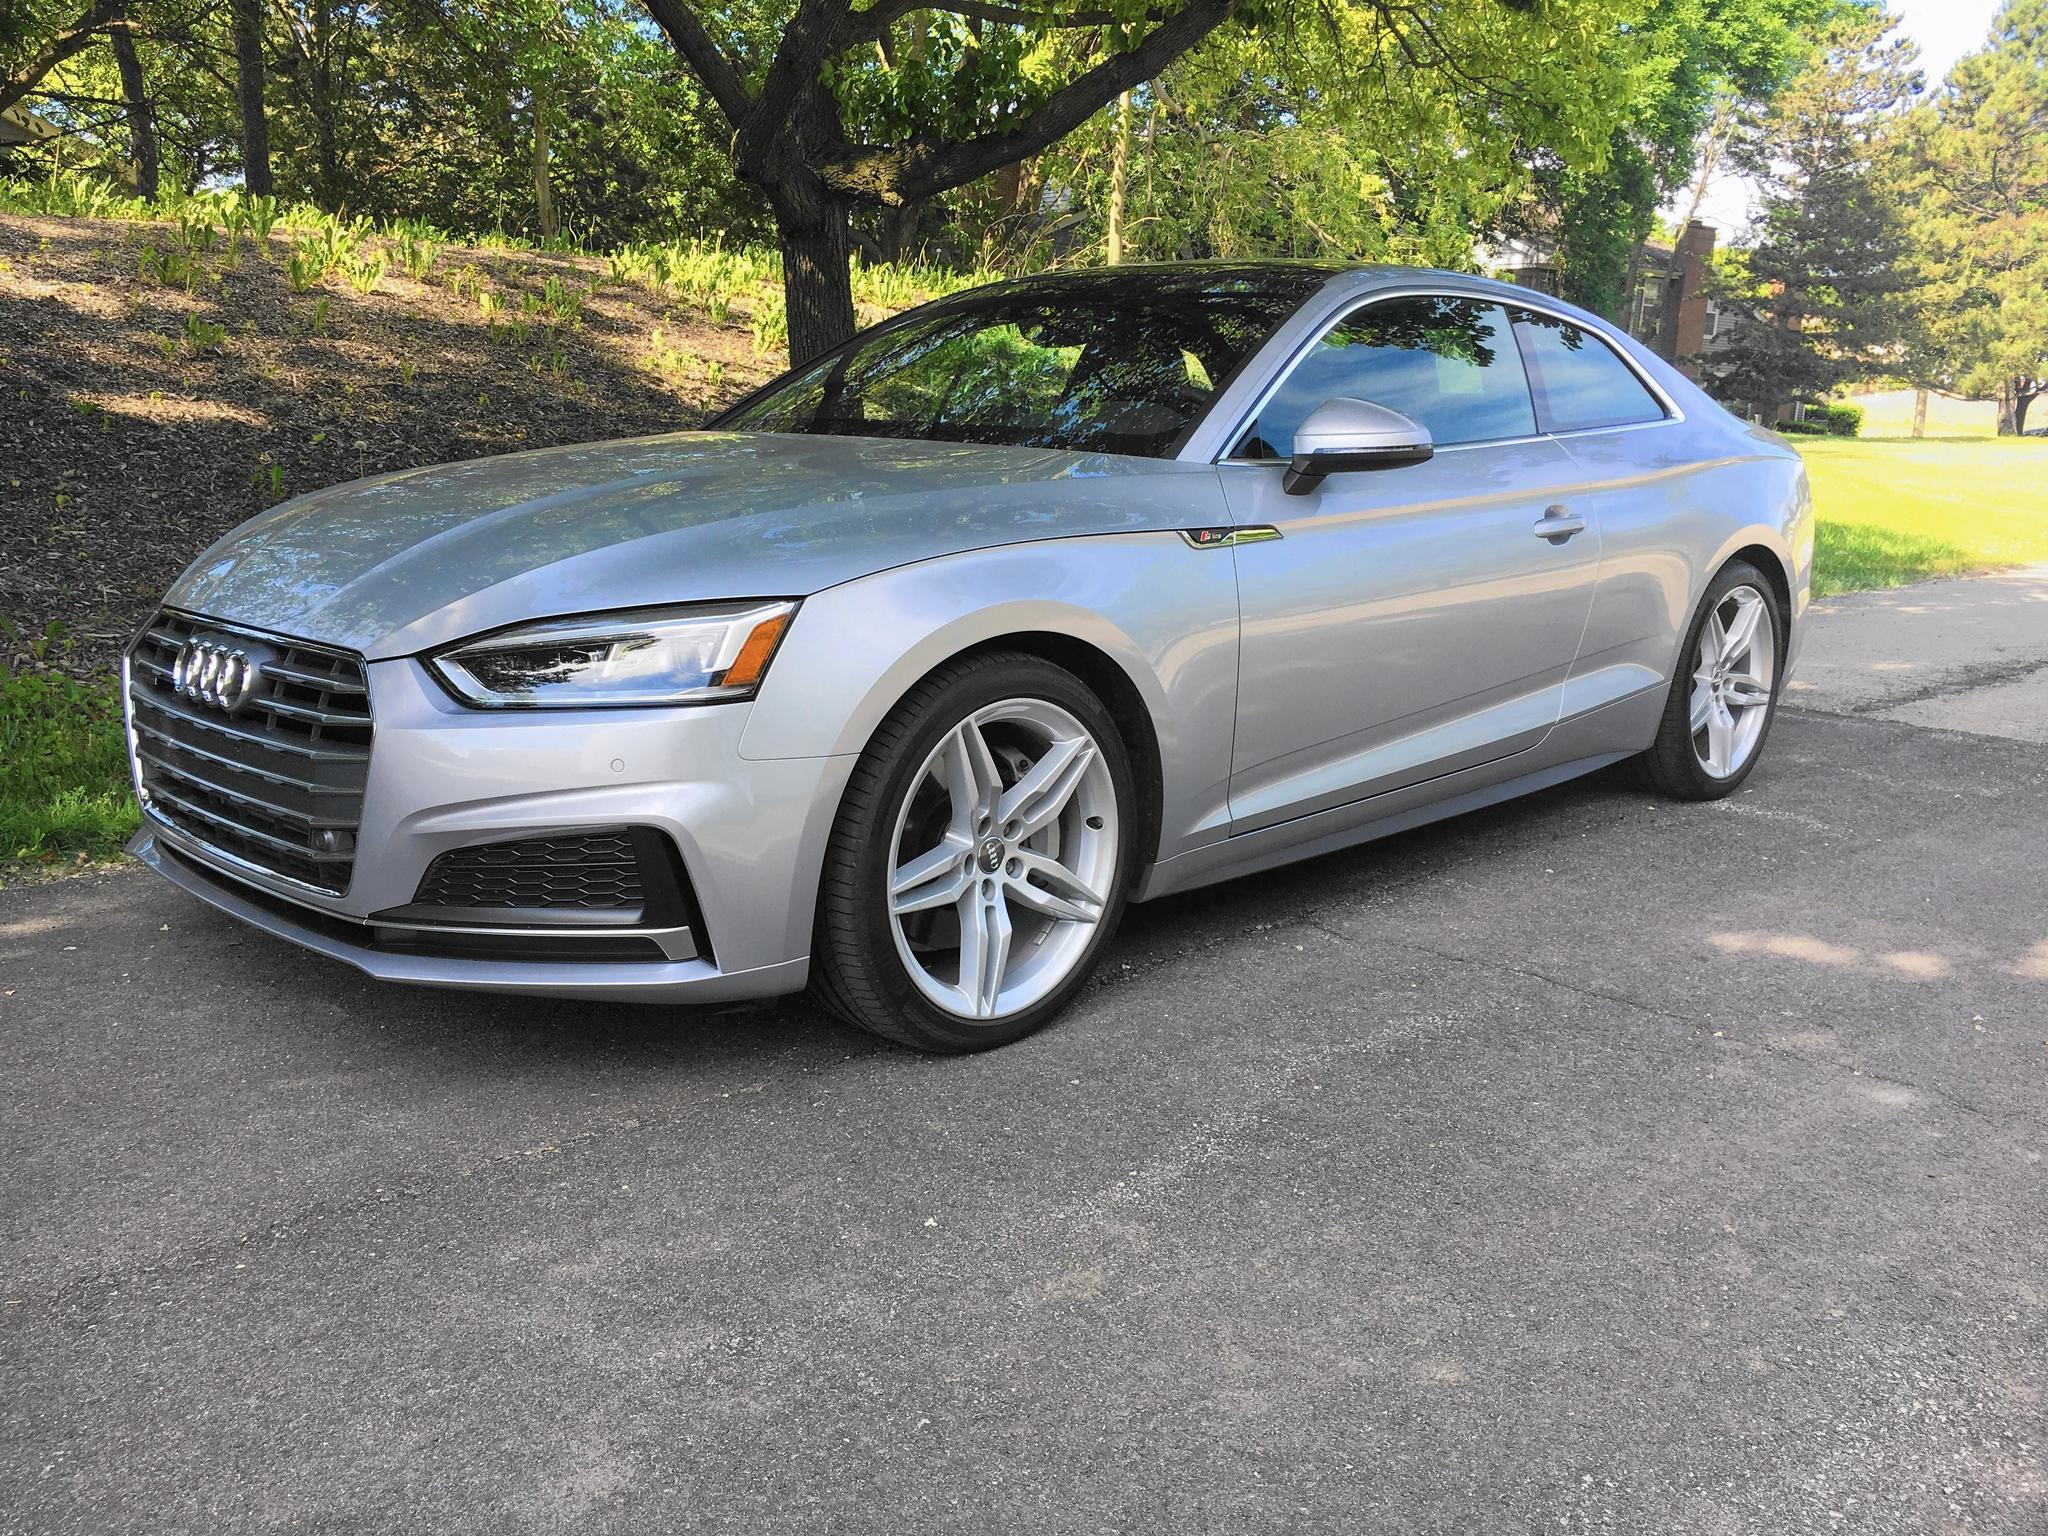 Audi A Coupe Is A Good Getaway Car Chicago Tribune - Audi a5 review